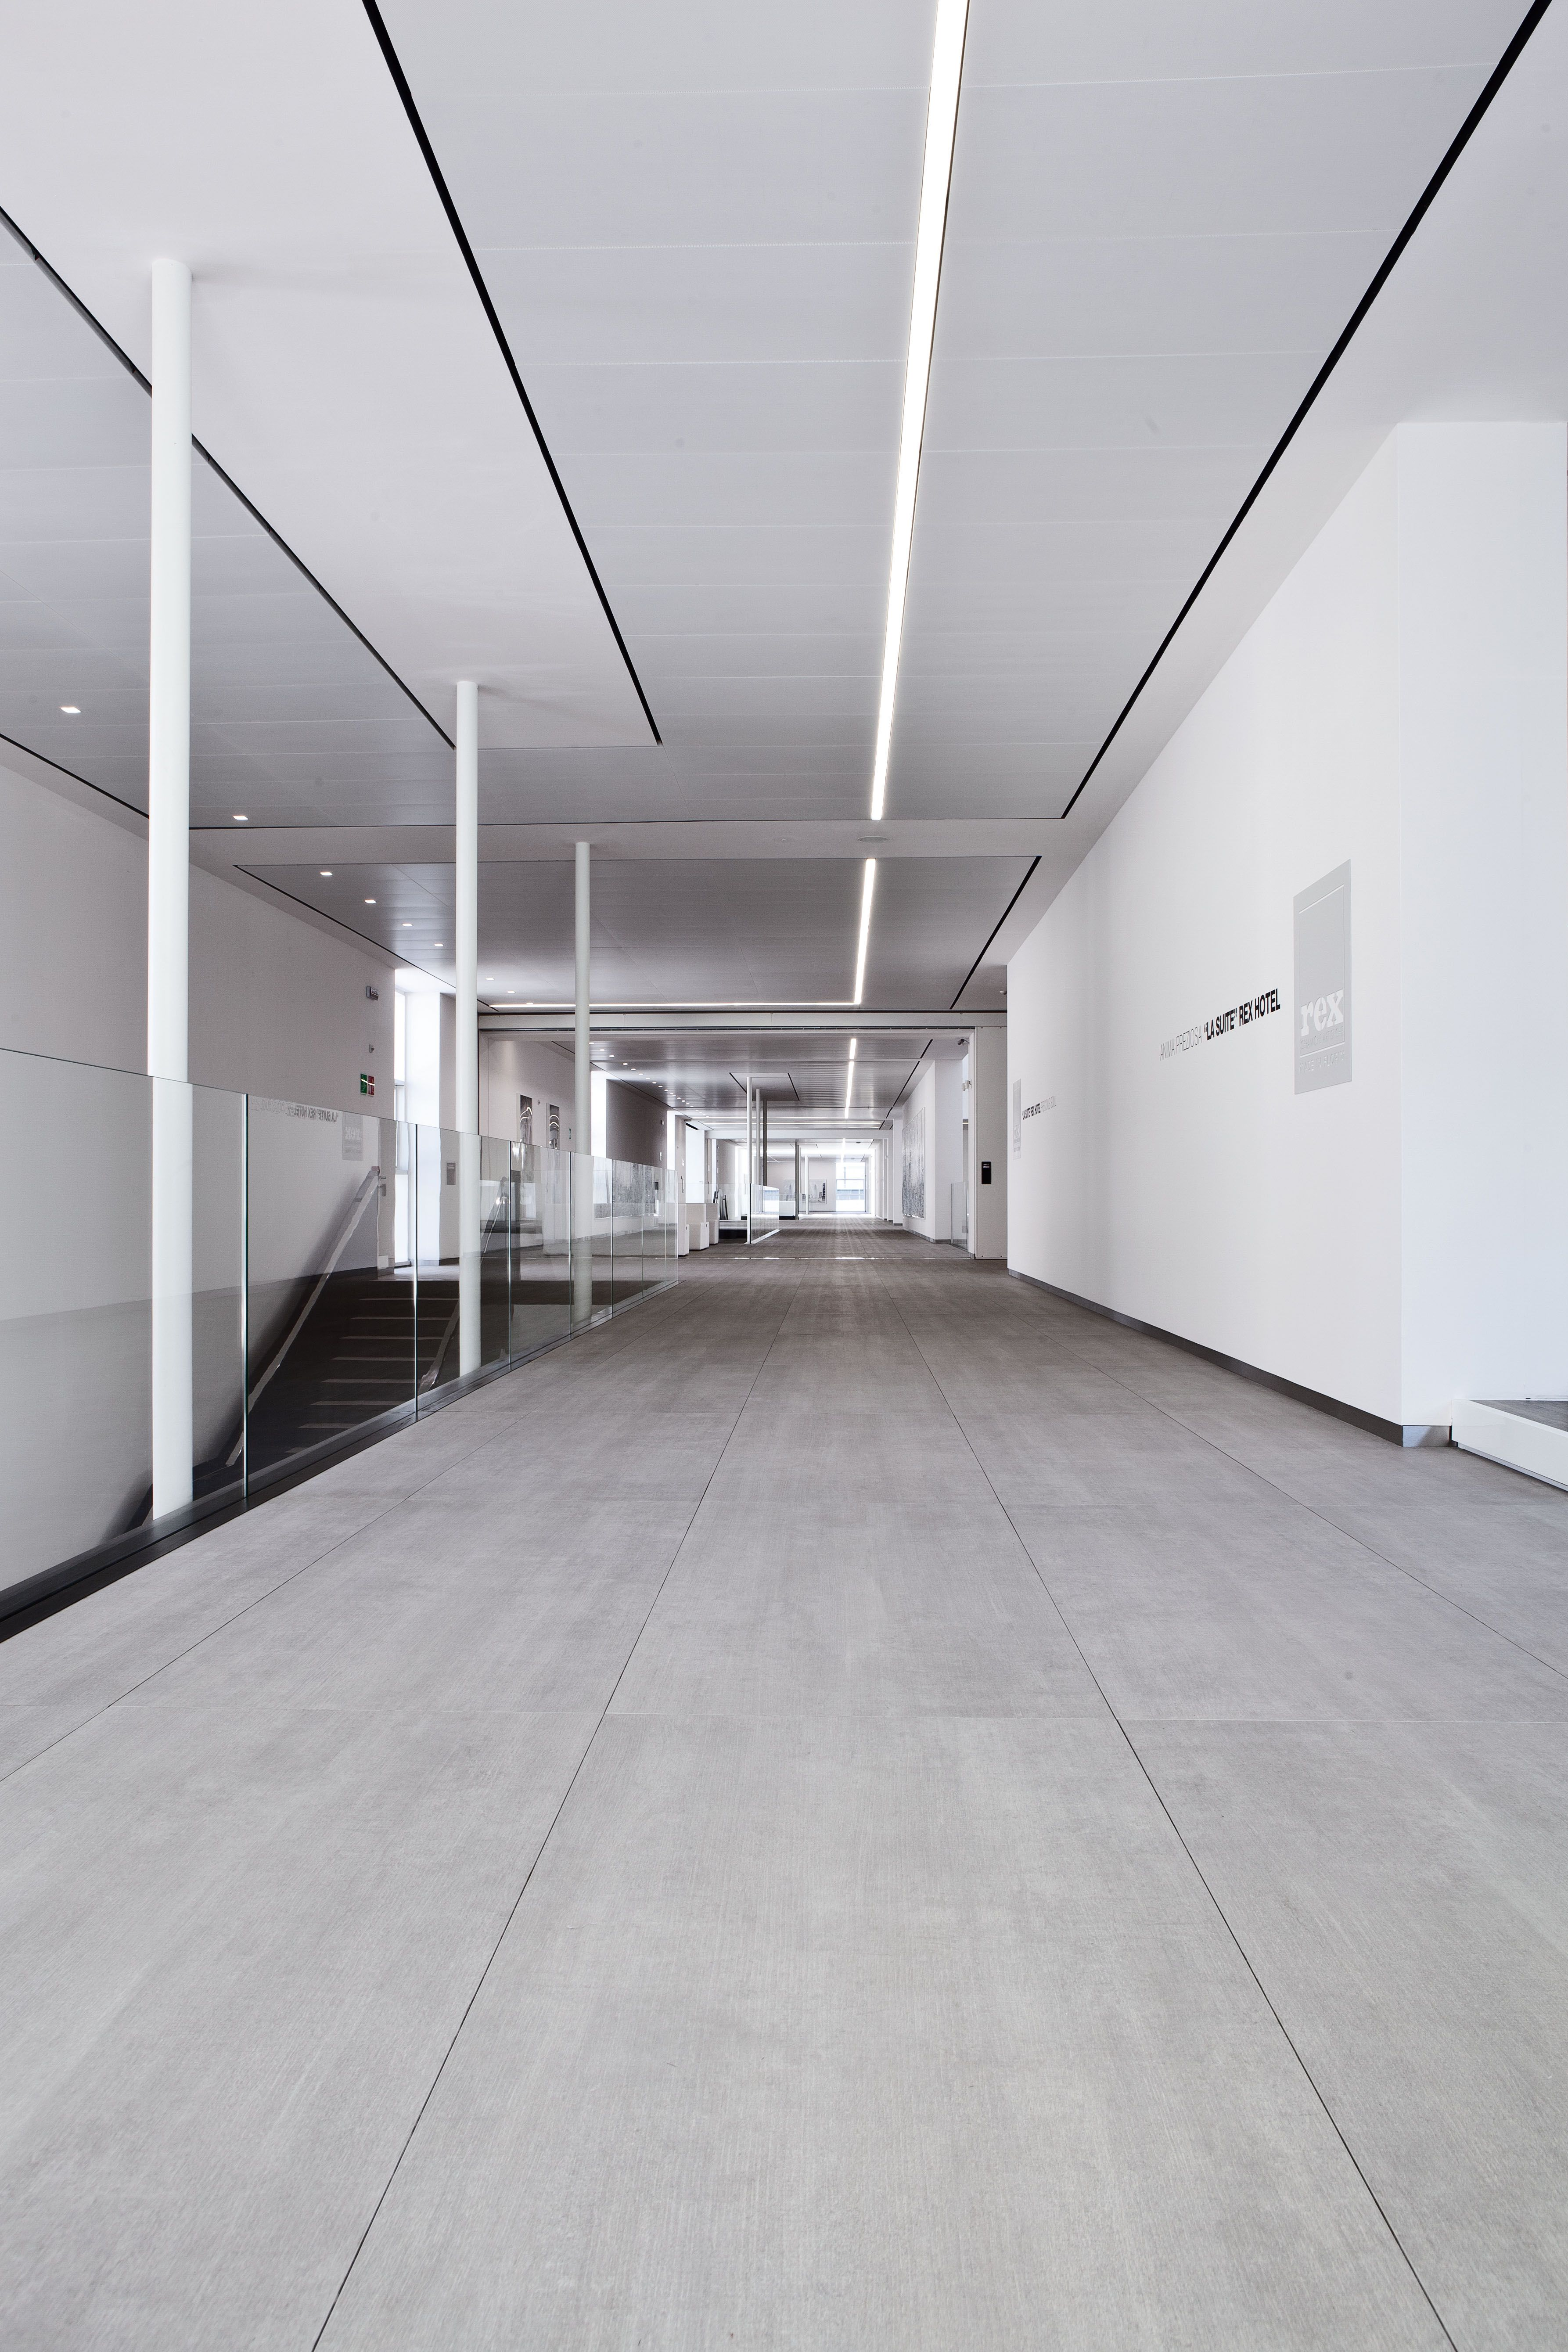 Wel e to Florim Gallery Florim GALLERY is a 9 000 m2 multifunctional space designed as a versatile container of product exhibition and events